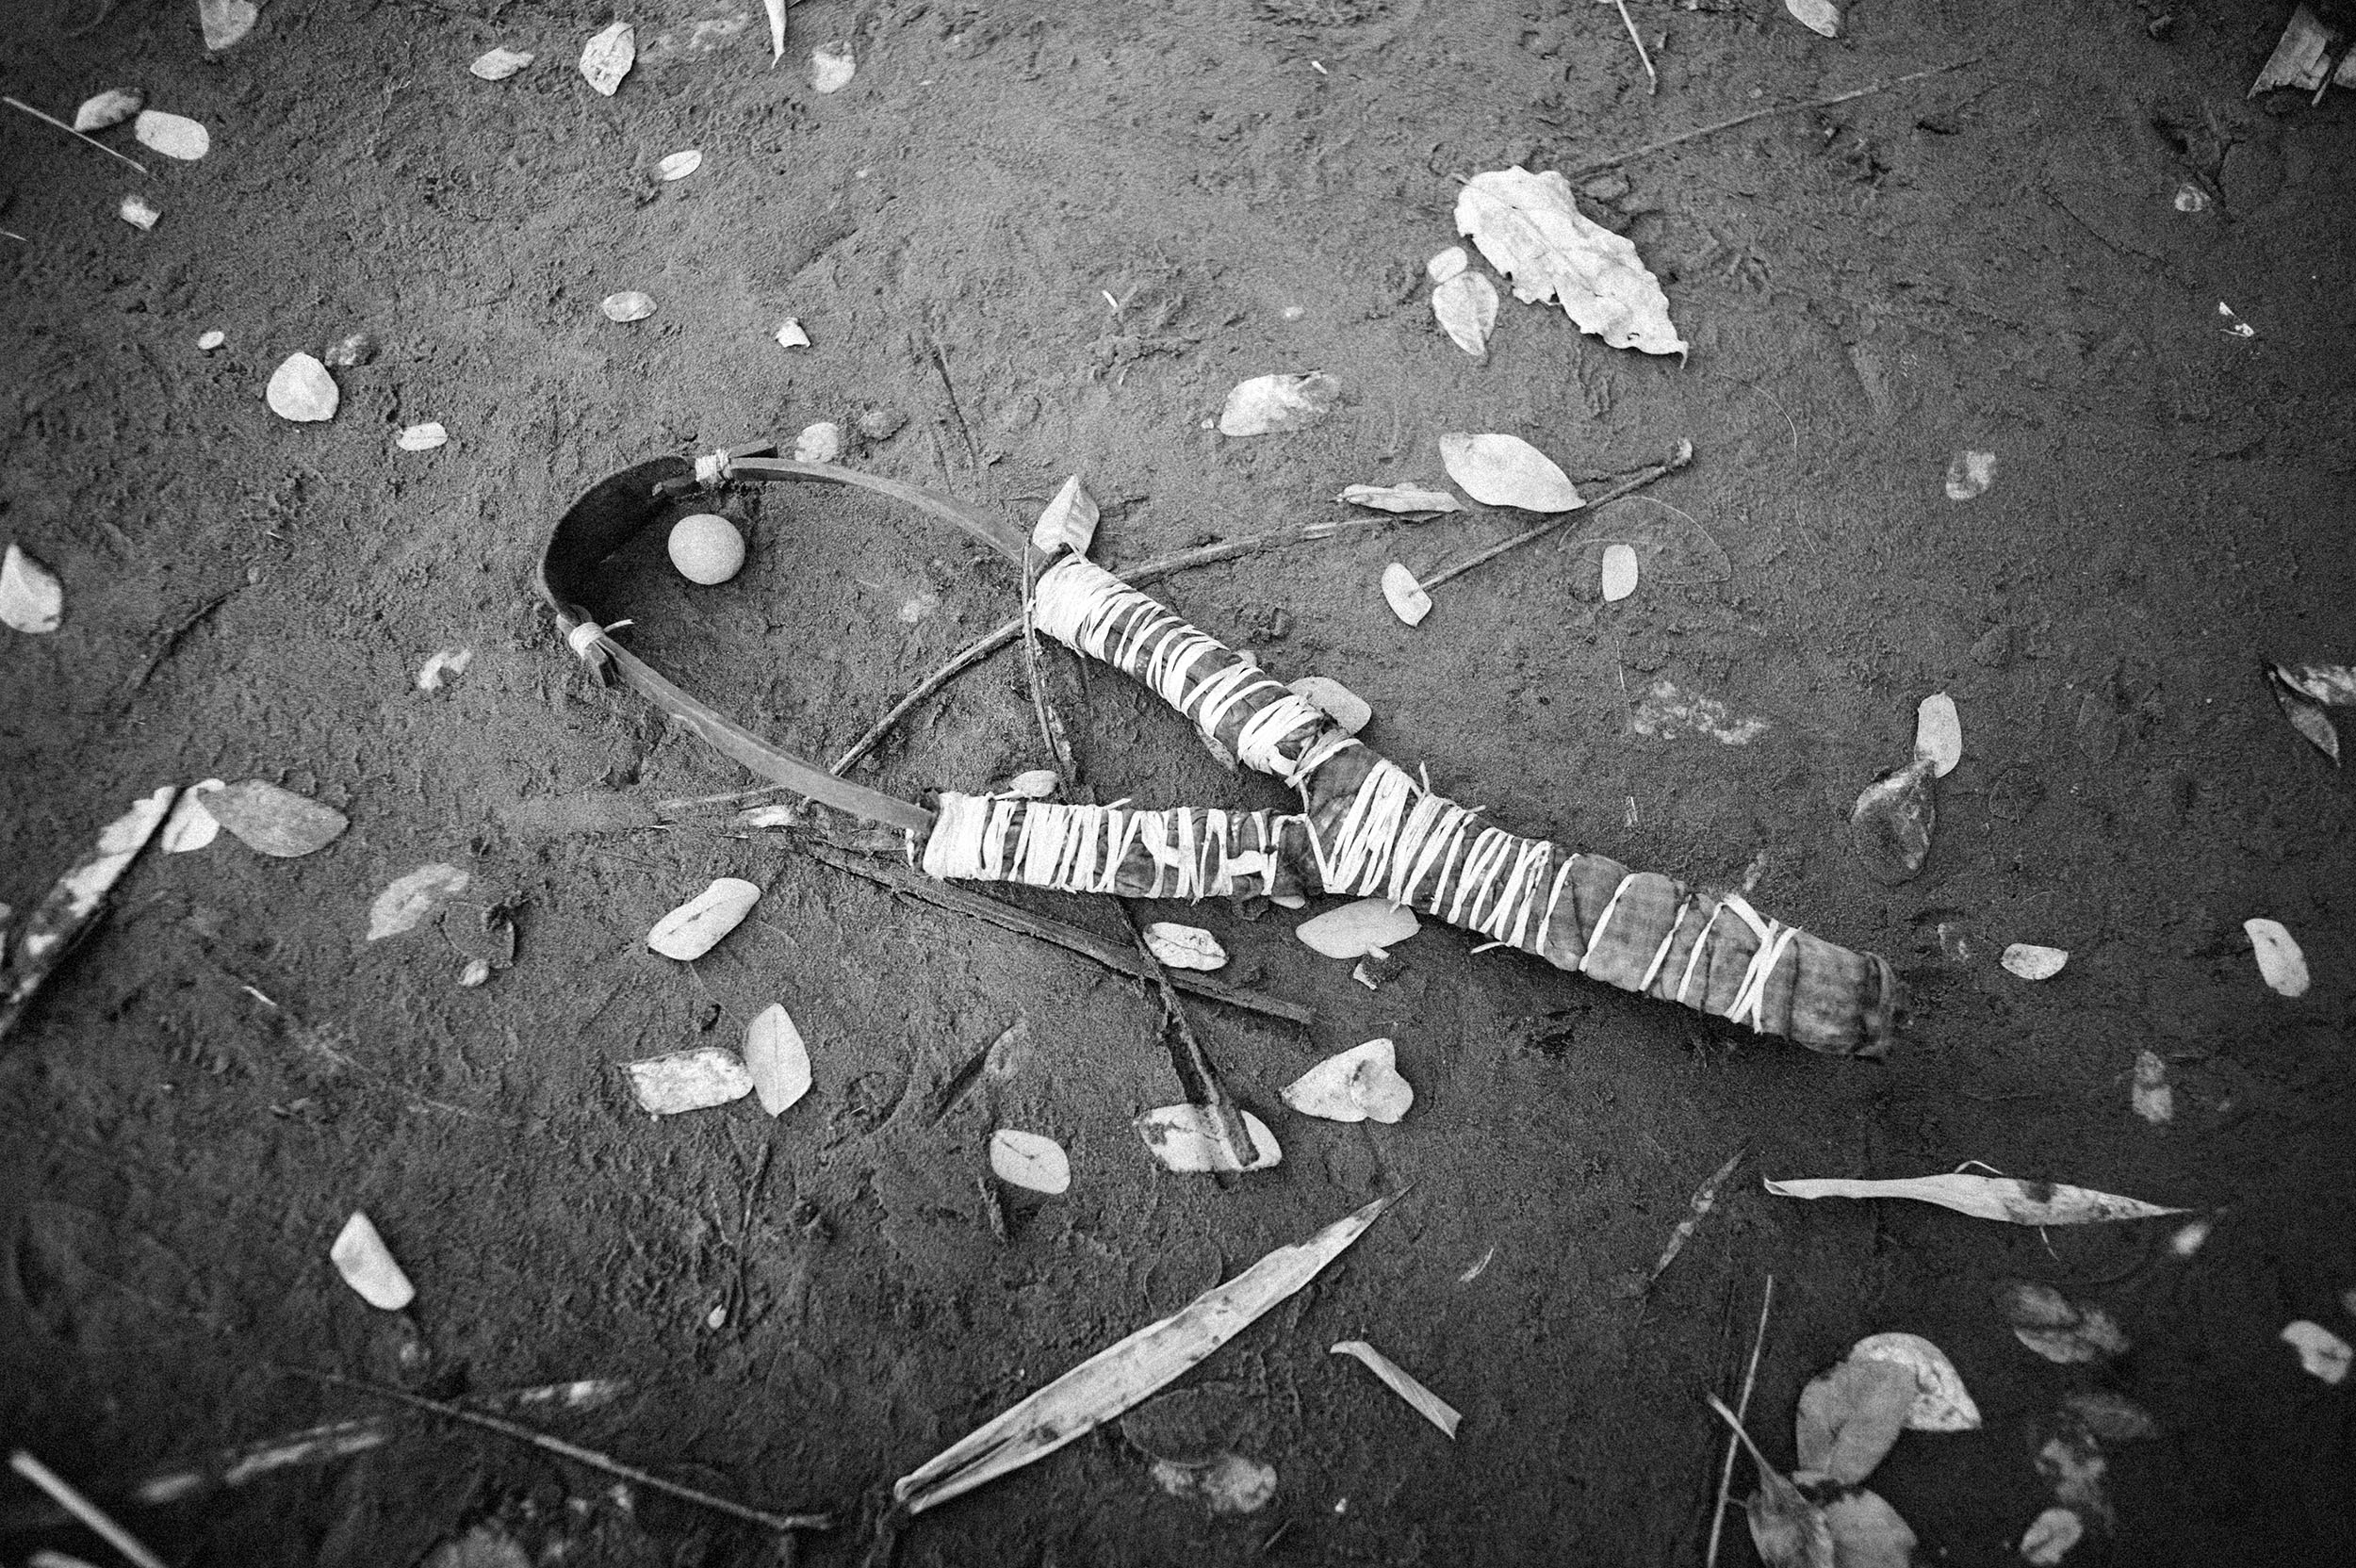 A homemade slingshot, used as a weapon during religious conflict in Sittwe.